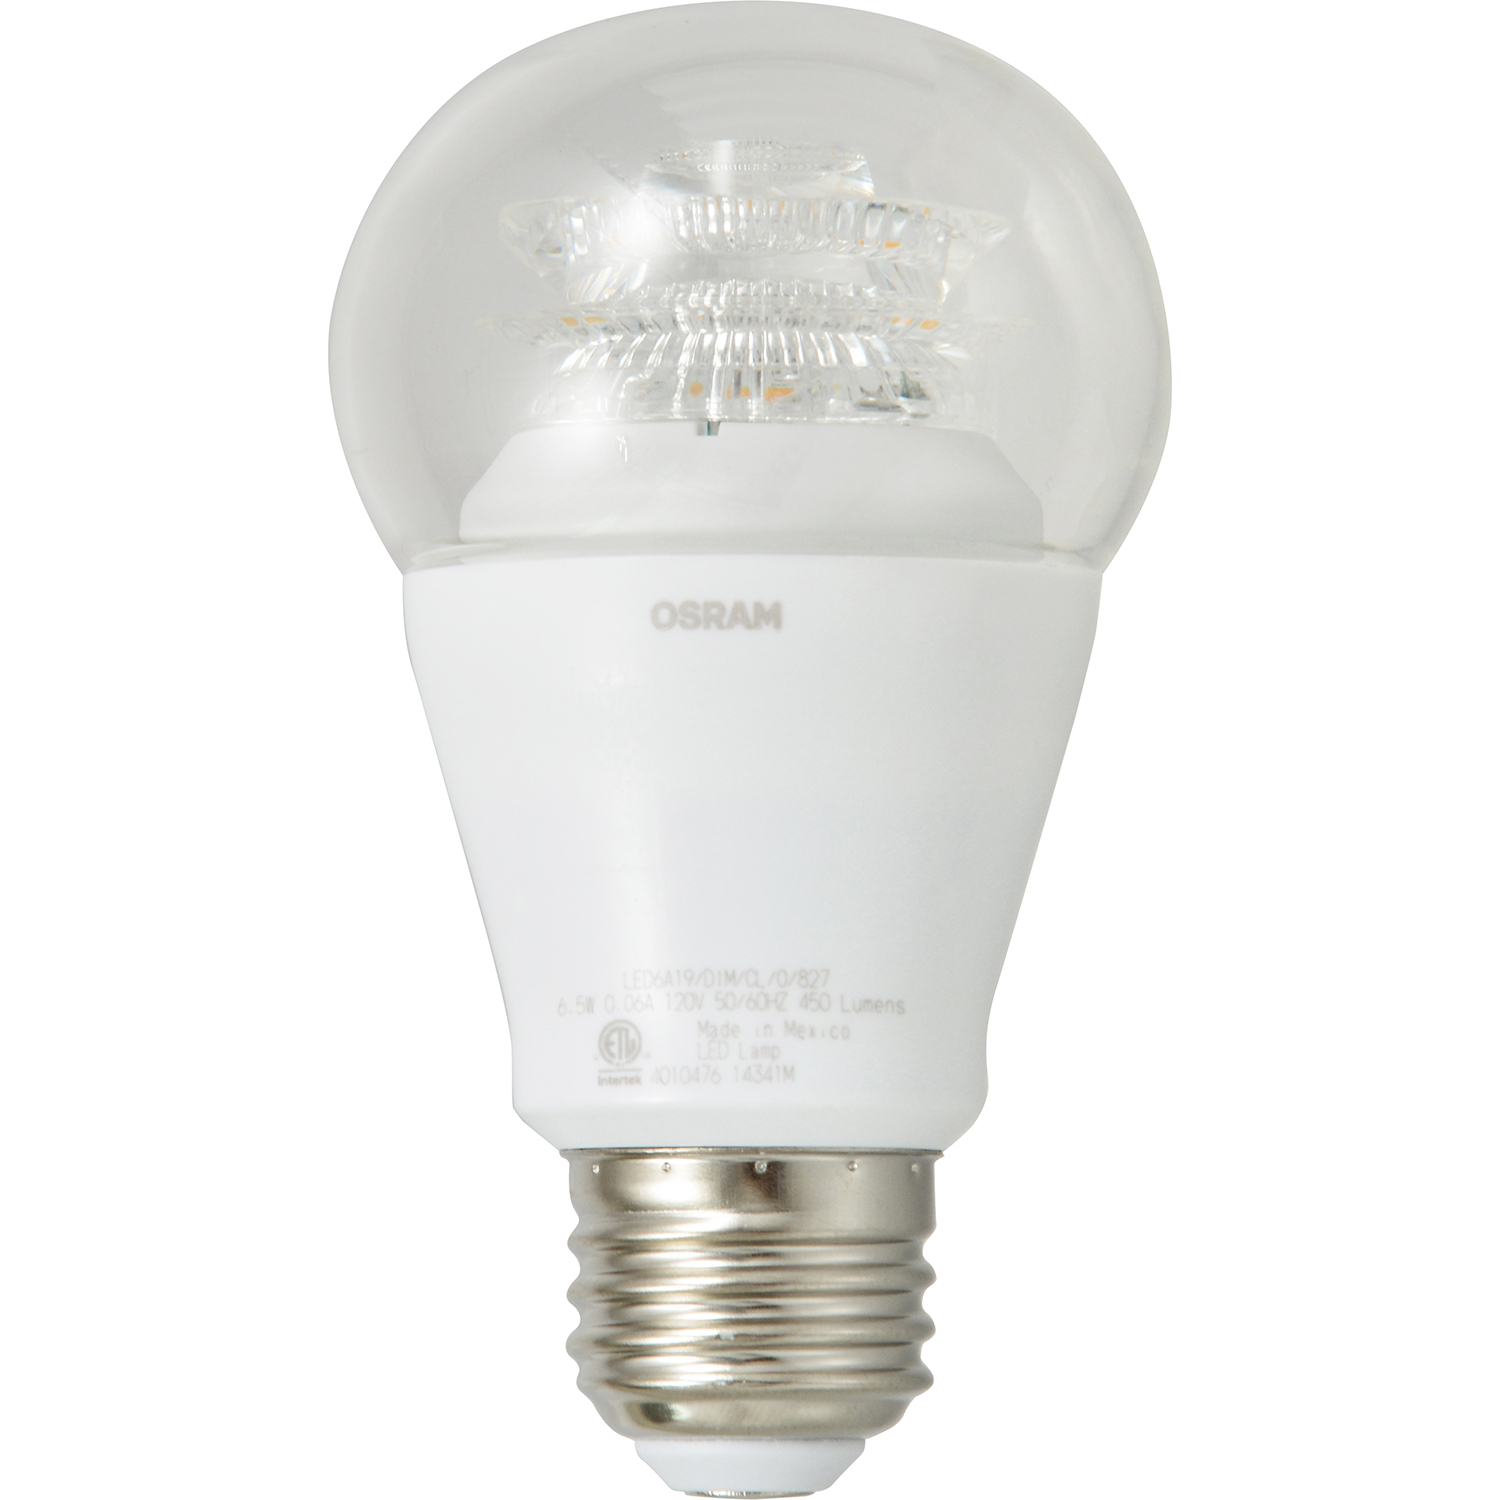 Sylvania a19 40w 120v e26 base dimmable soft white ultra led light bulb 79141 ebay Sylvania bulb